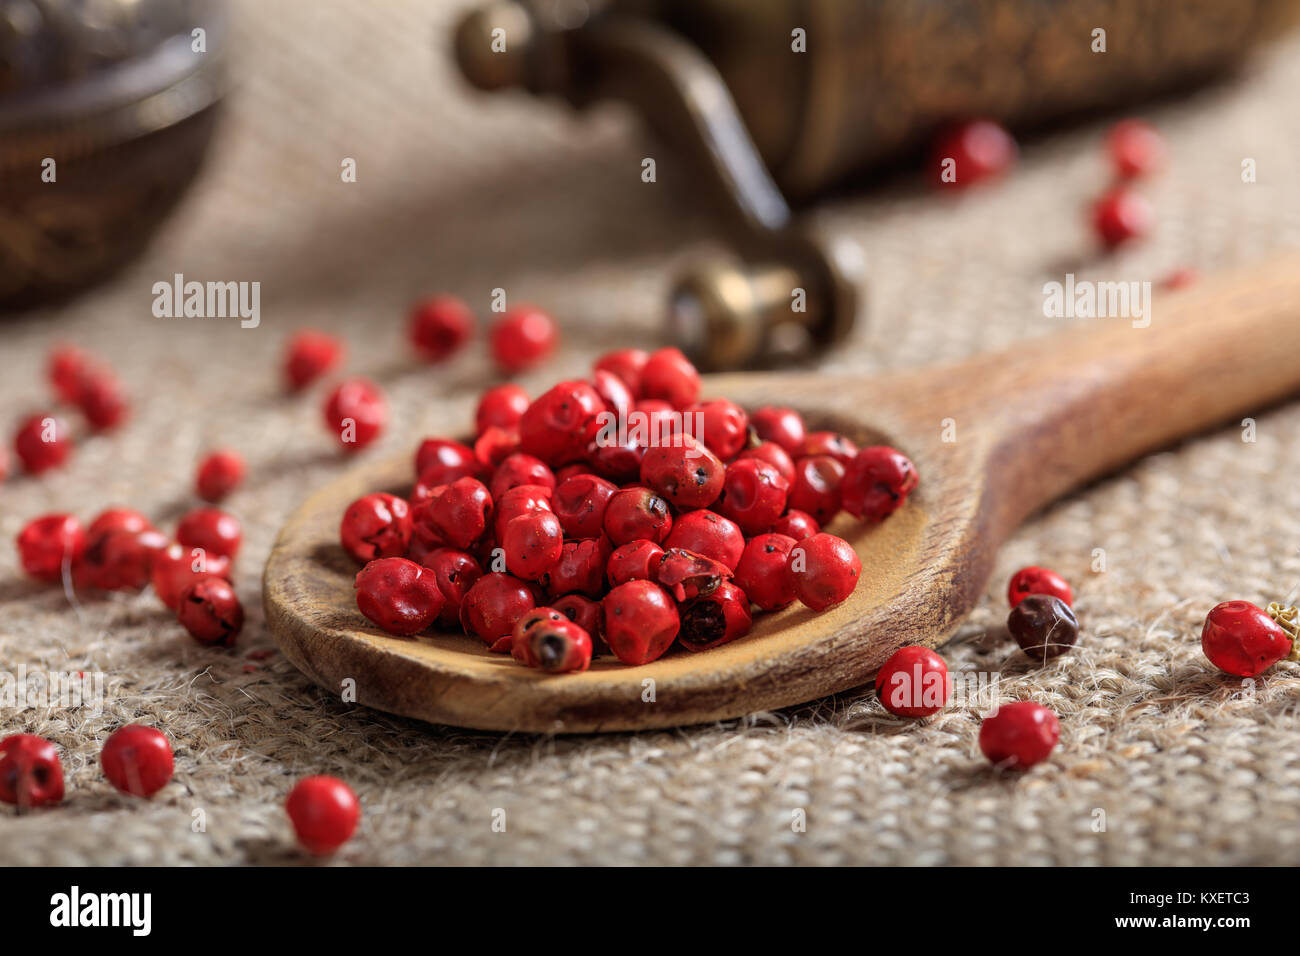 Red pepper seeds in a wooden spoon - Stock Image